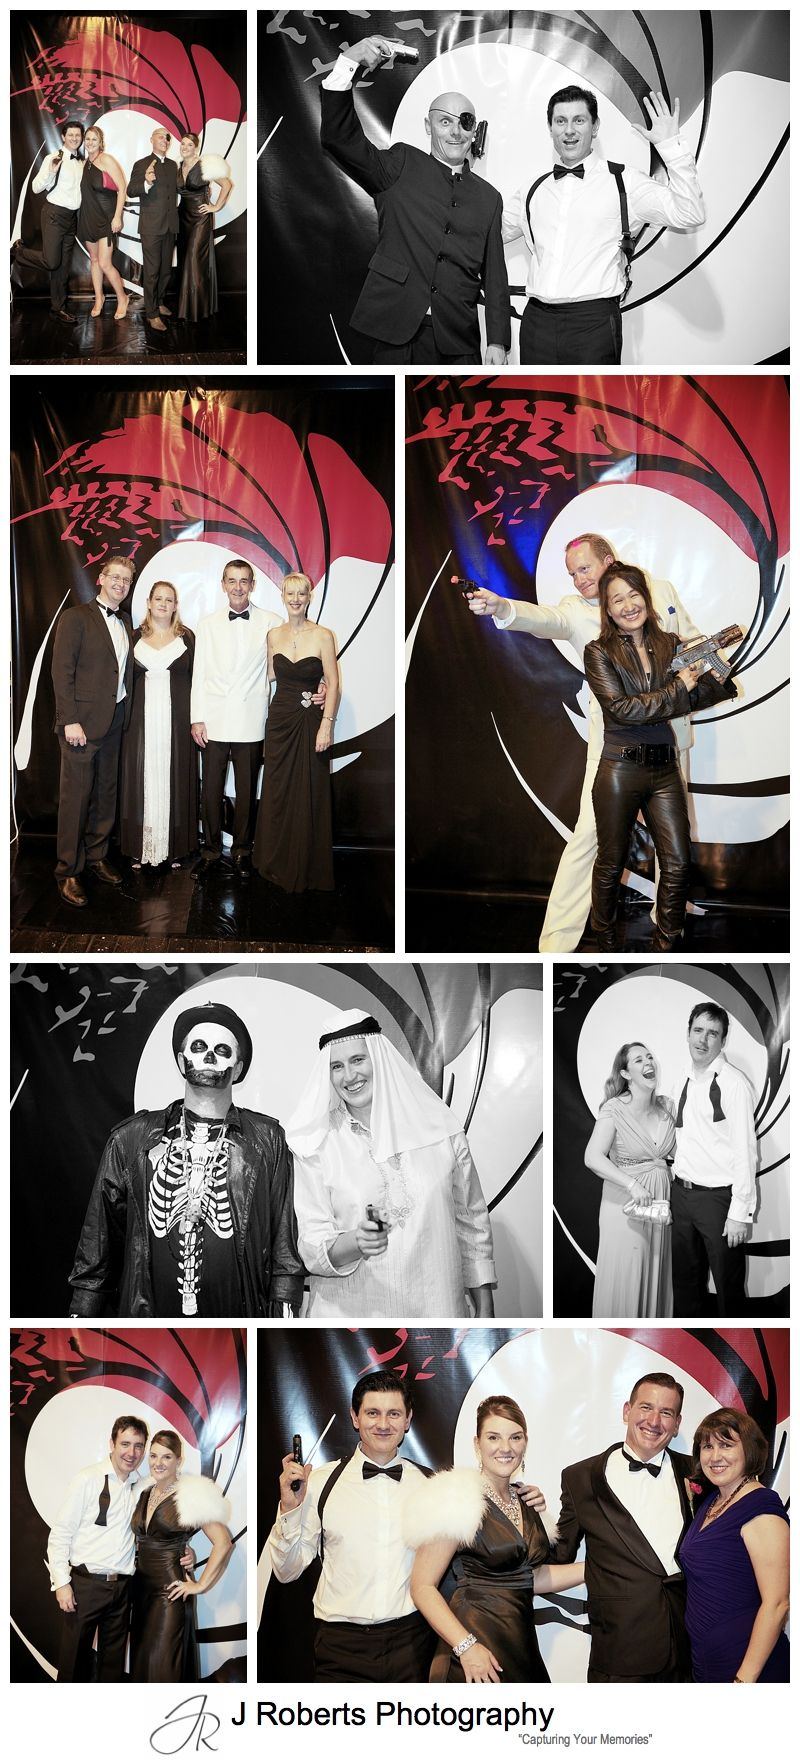 James bond theme photo booth at party - sydney party photography